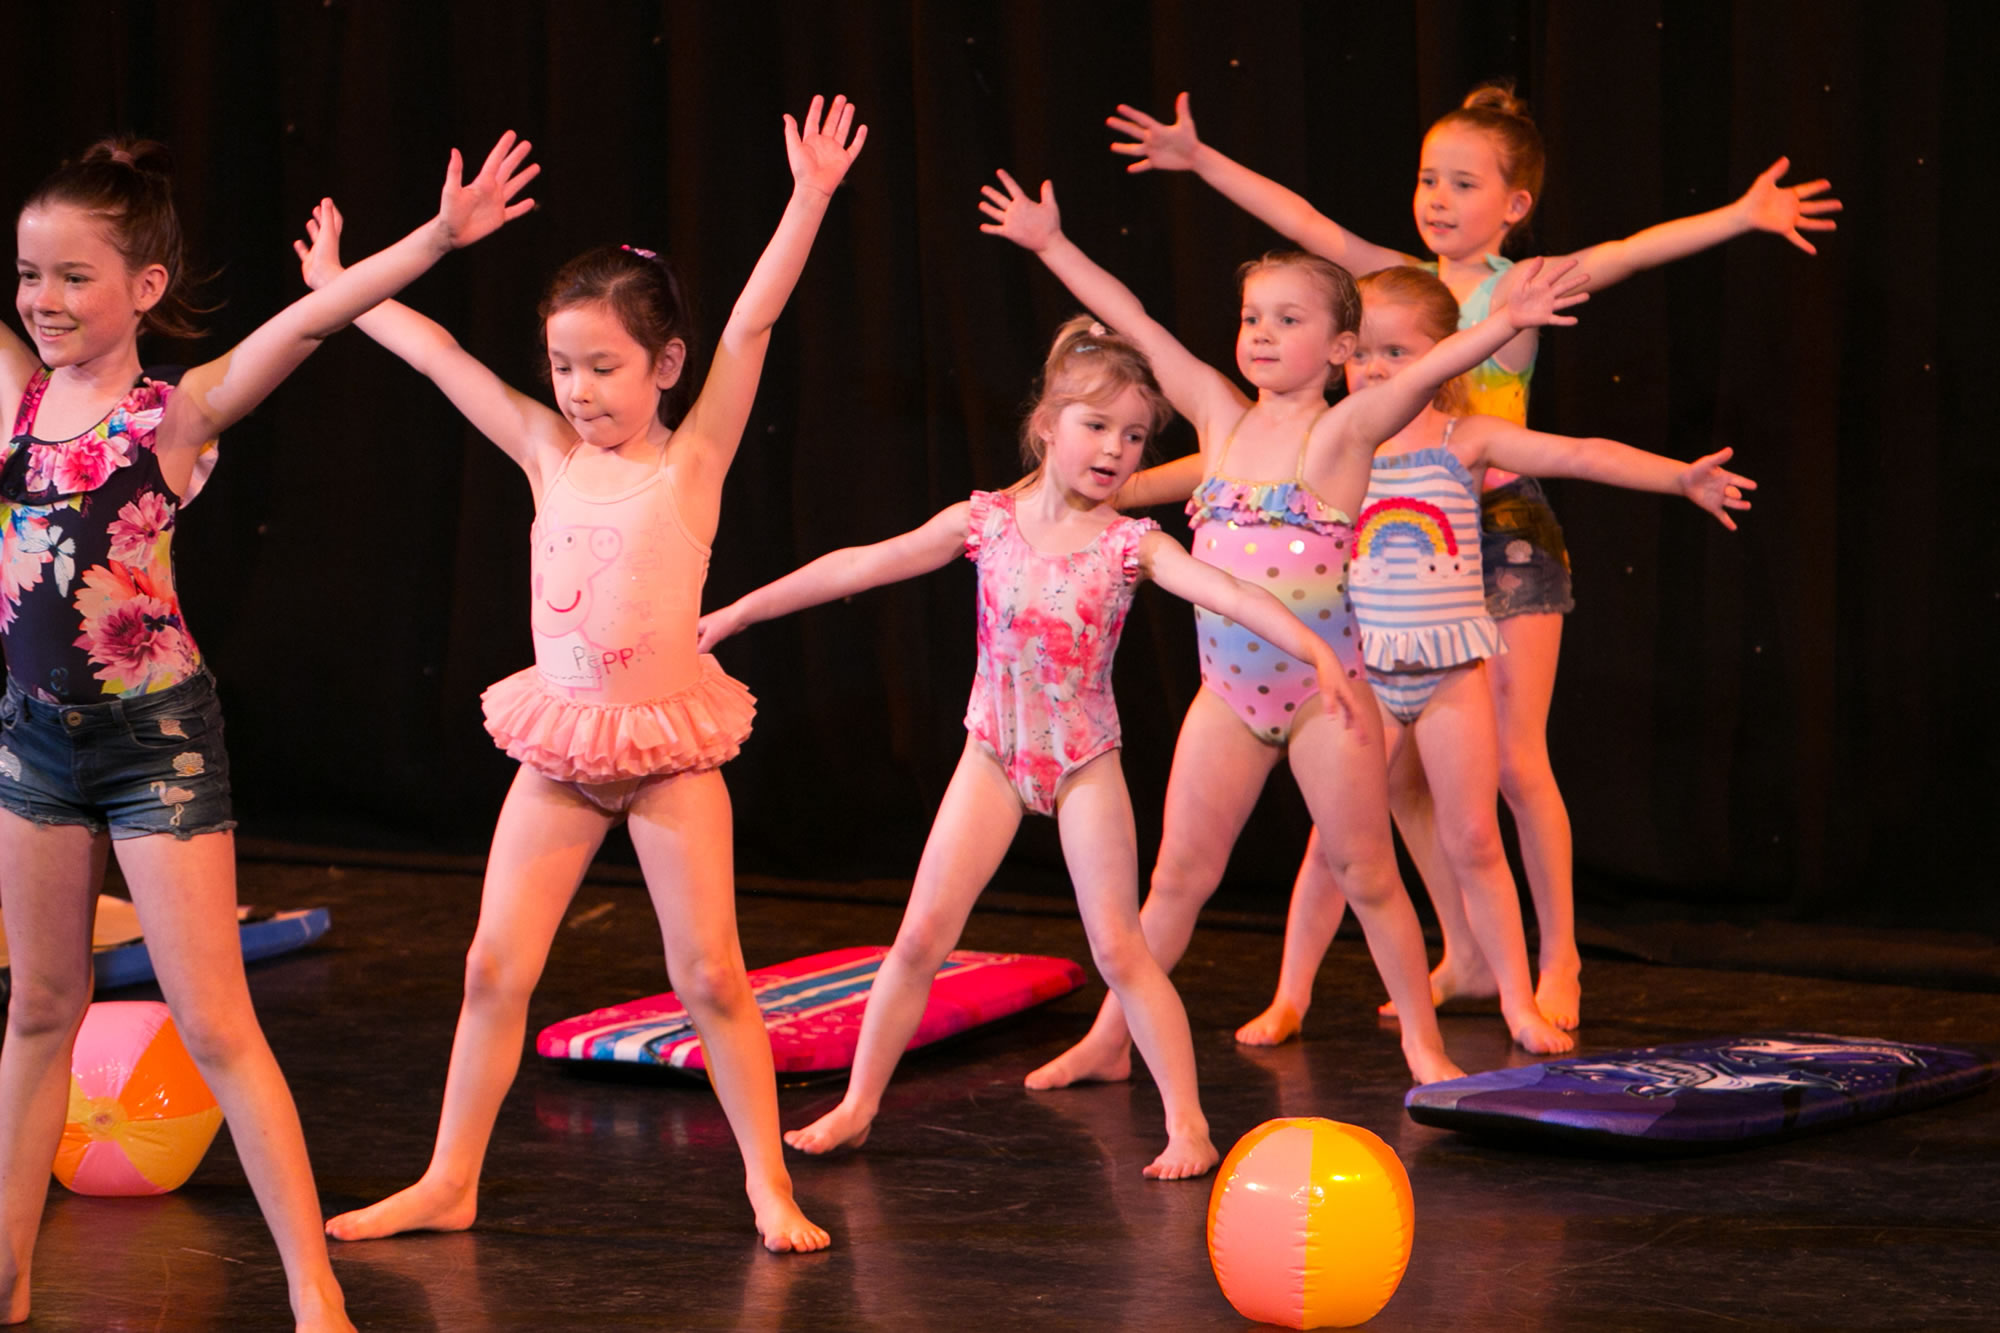 Hitchin_School_of_Dance_Show_2019-SM1_2038.jpg